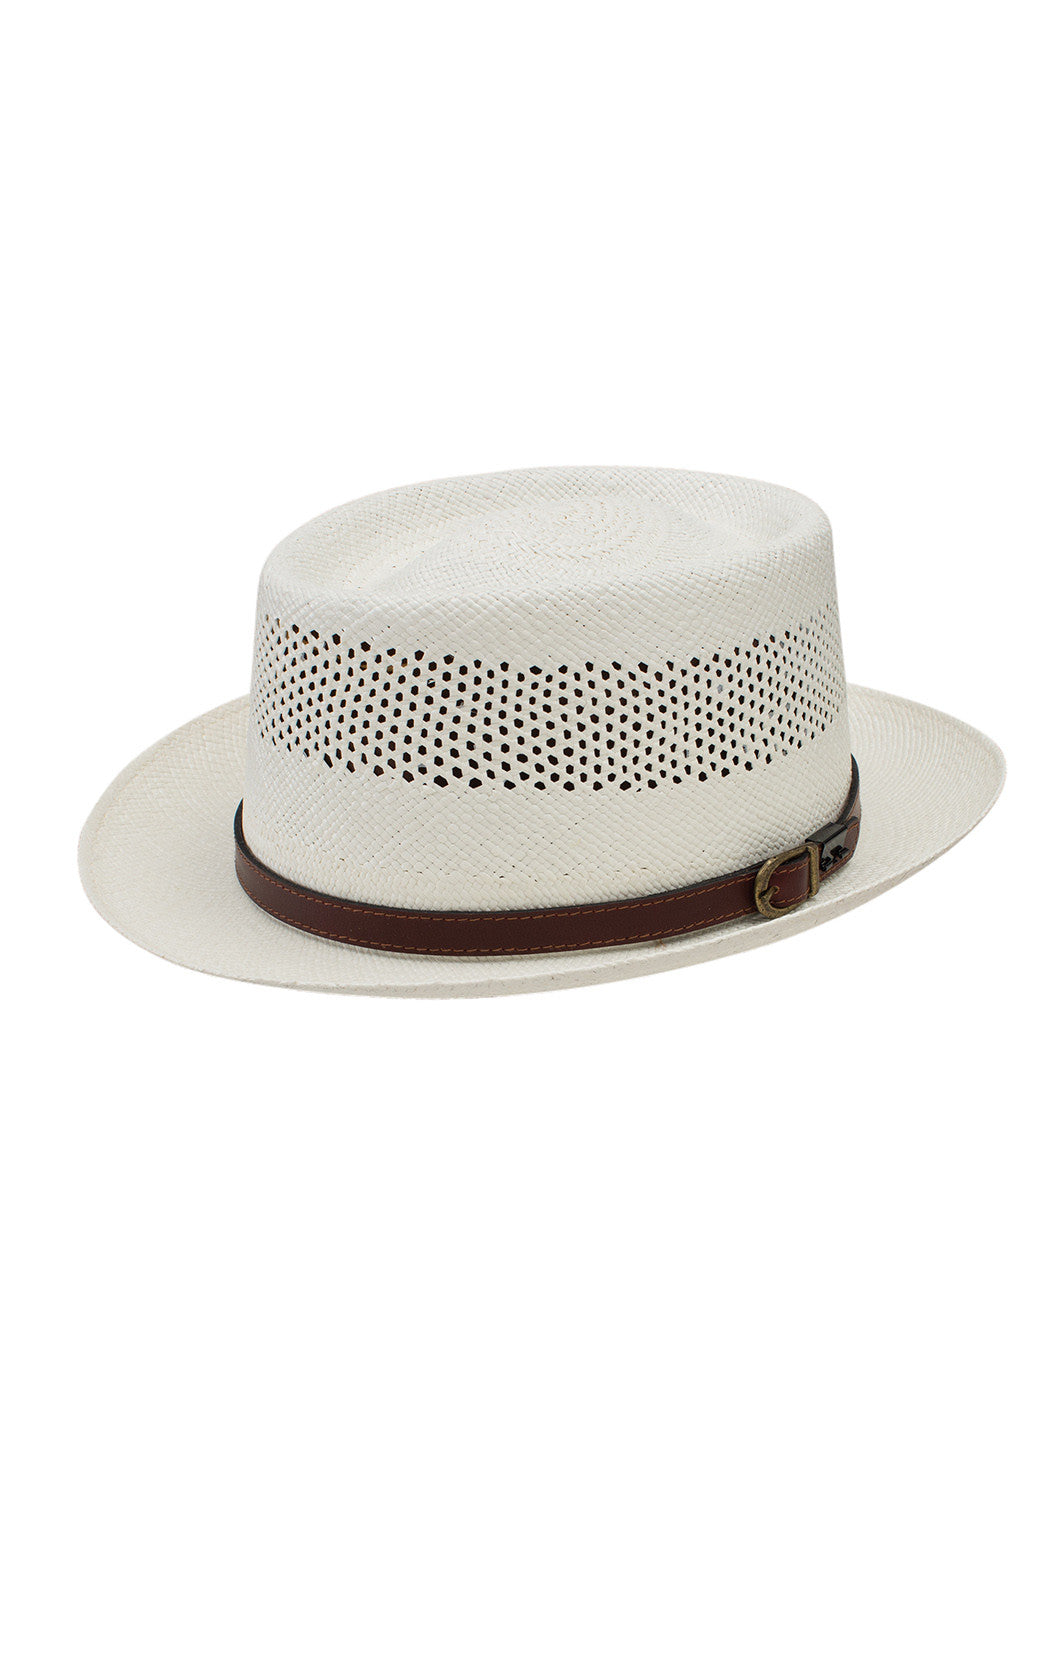 mens straw hat, stetson hat, summer hats, mens trendy hat